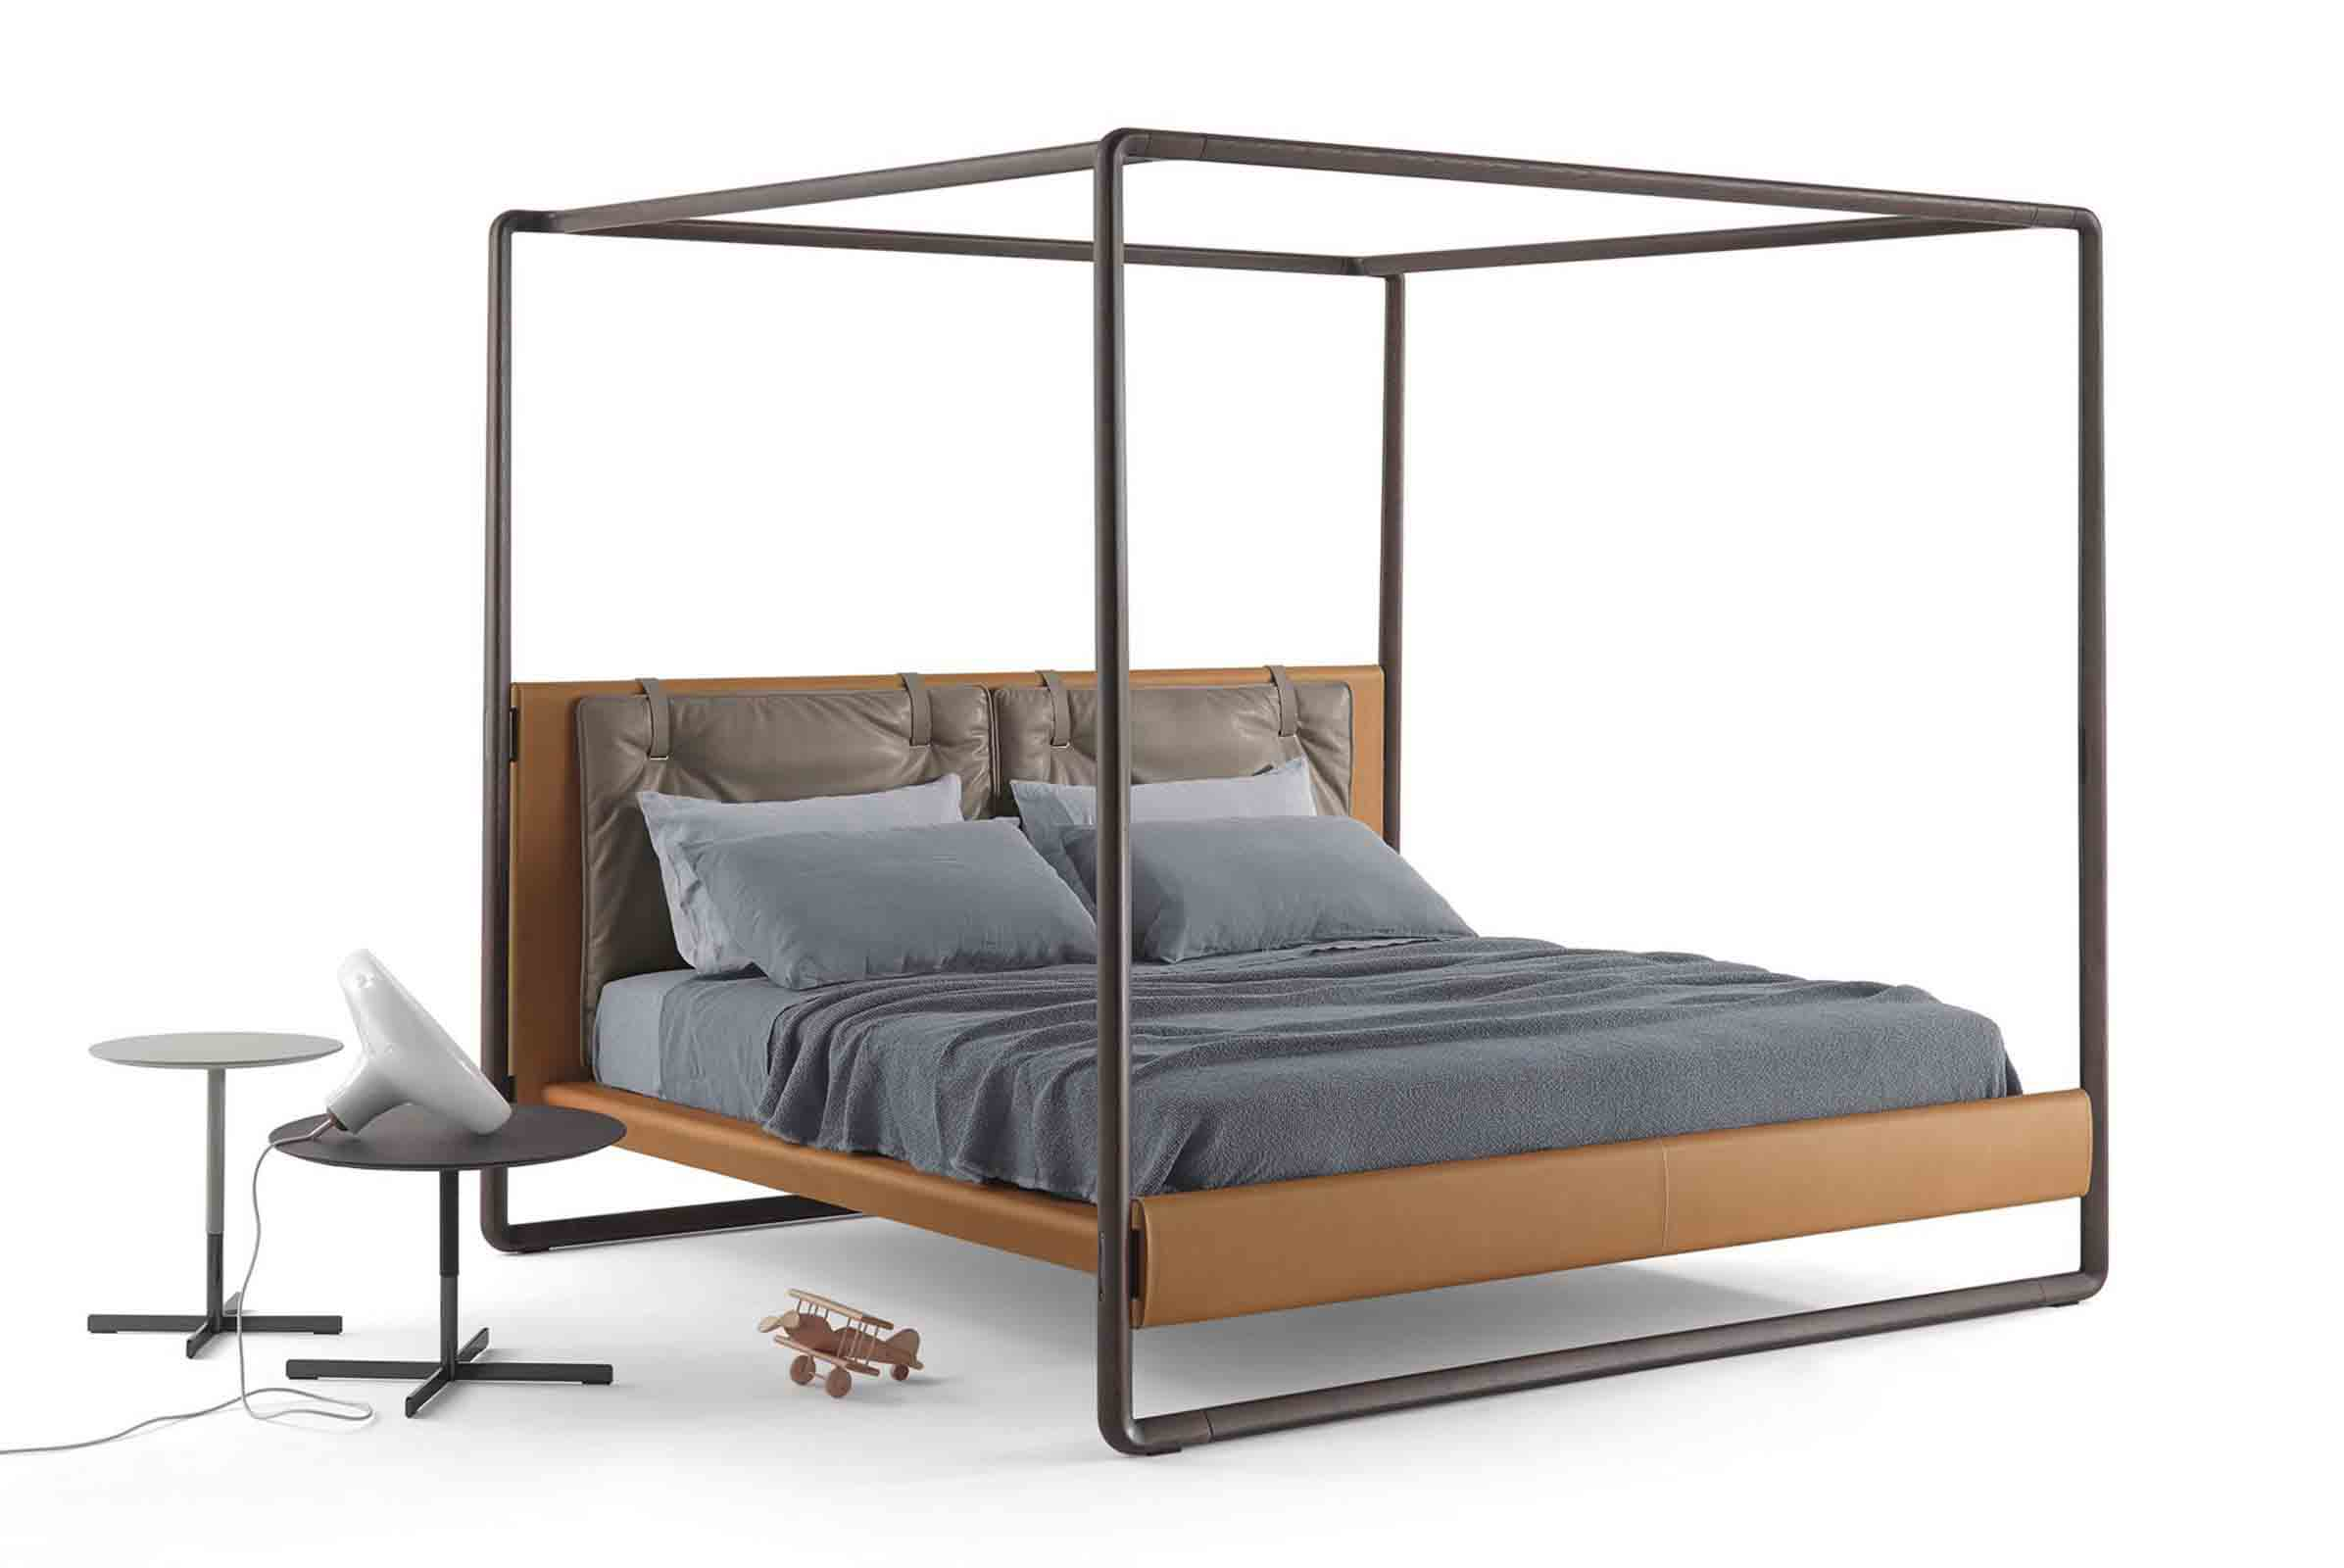 'Volare' four-poster bed designed by Roberto Lazzeroni for Poltrona Frau